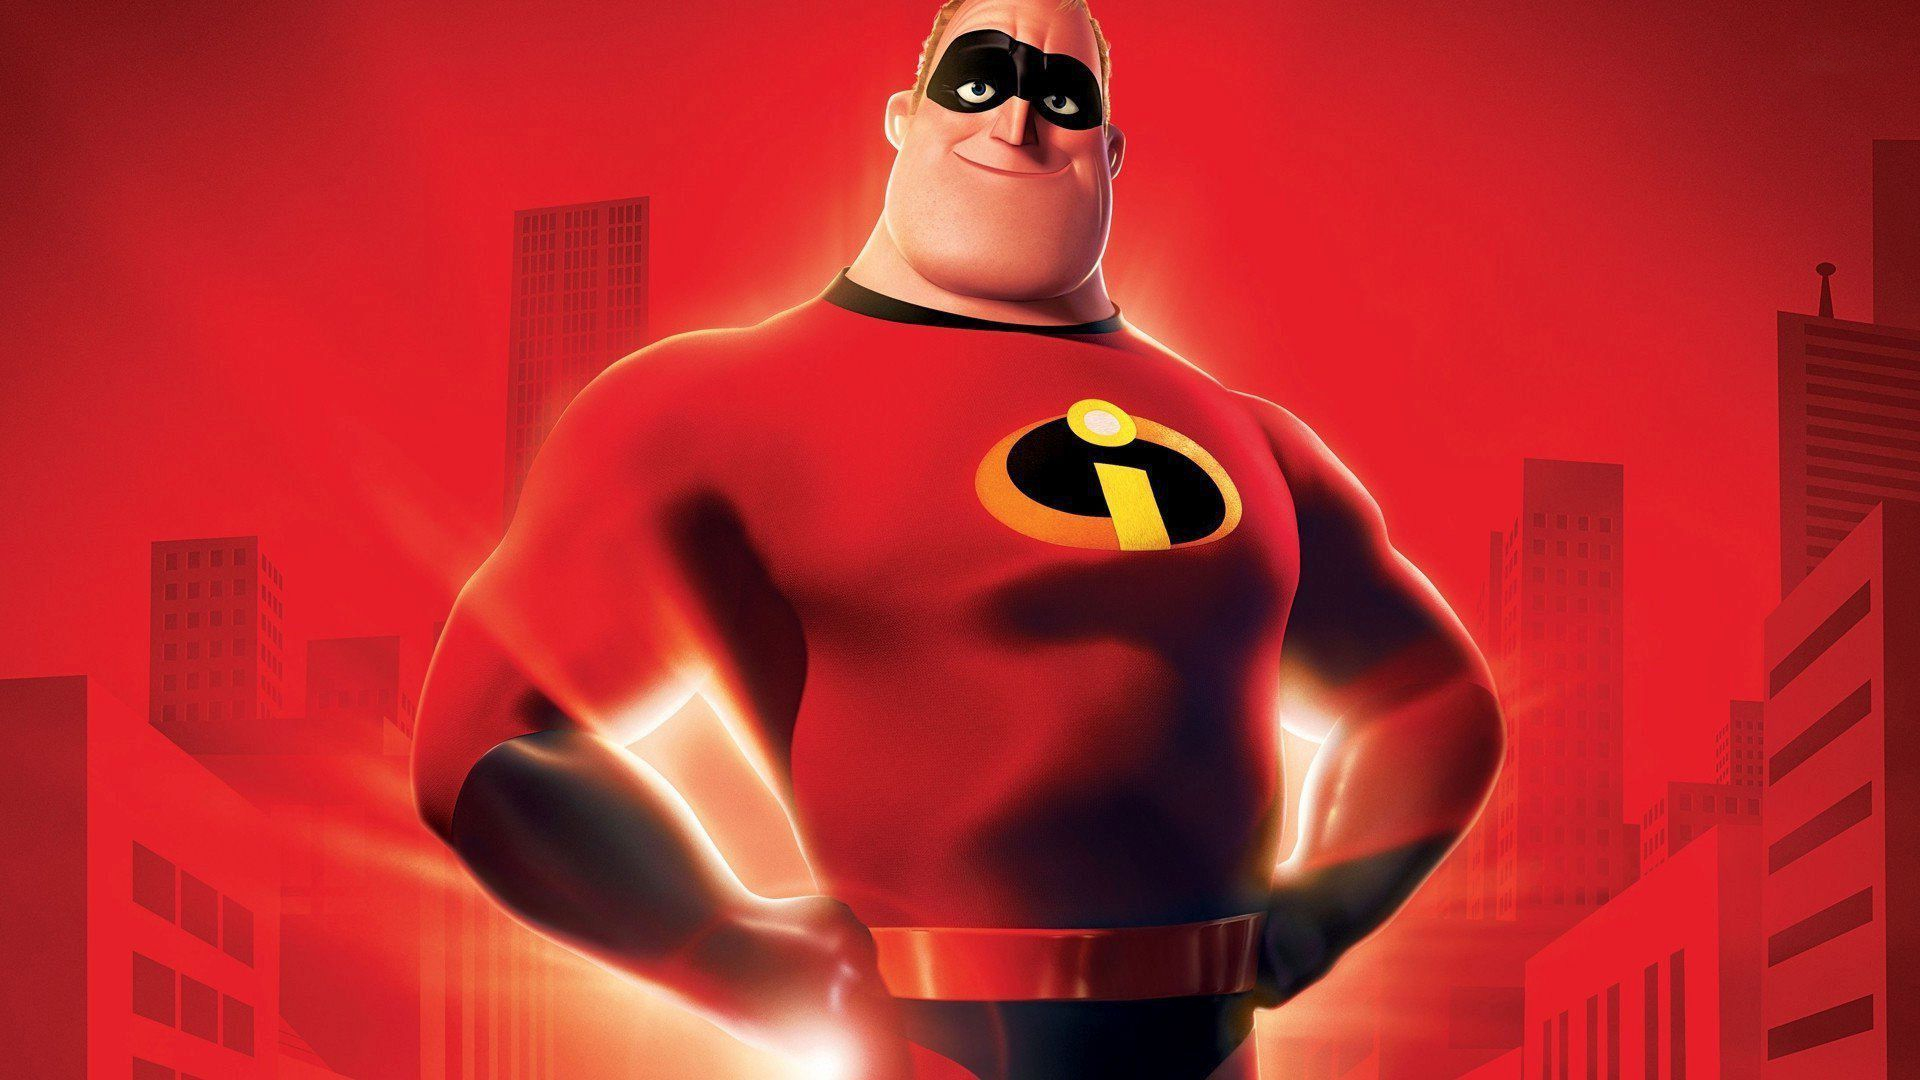 mr incredible full hd wallpaper and background image | 1920x1080